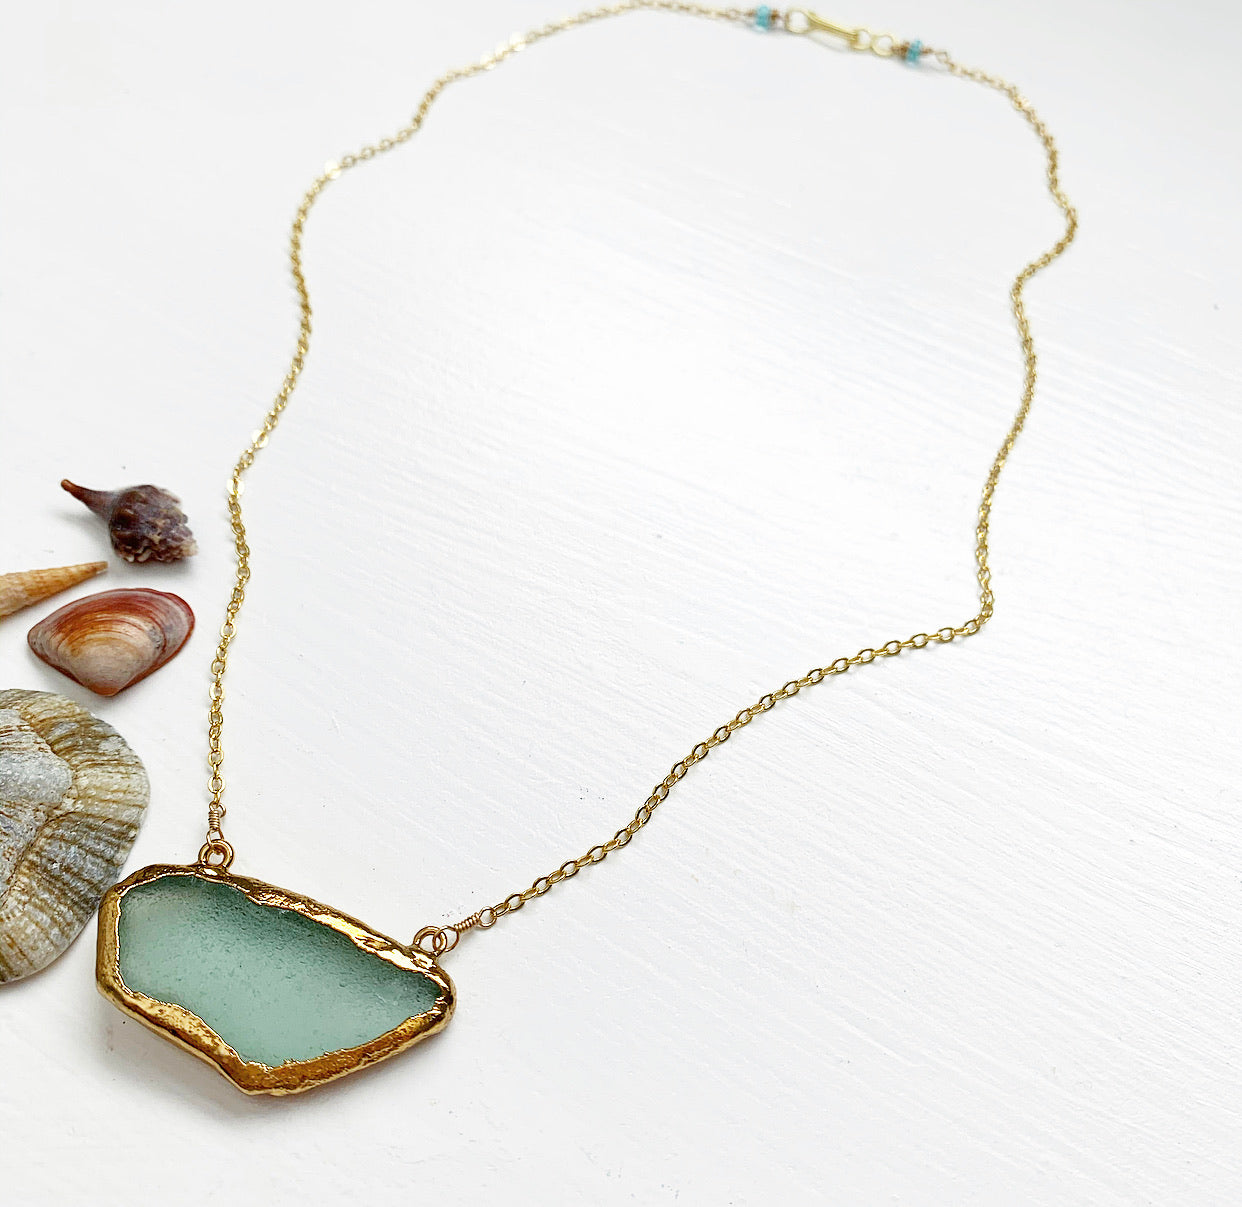 896-Seaglass Necklace